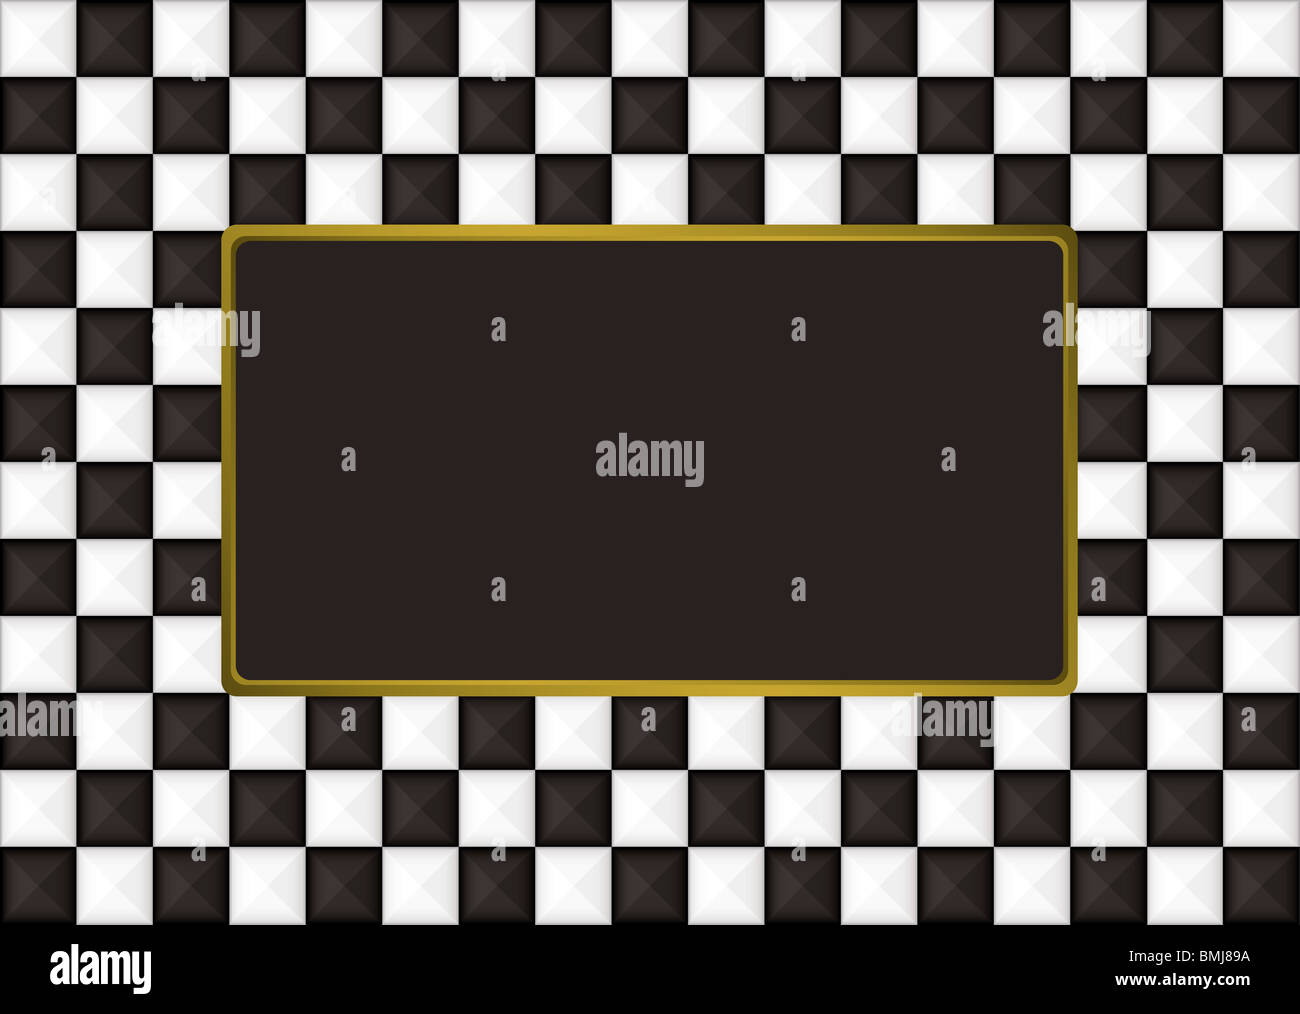 Black and white checkered picture frame with gold trim - Stock Image